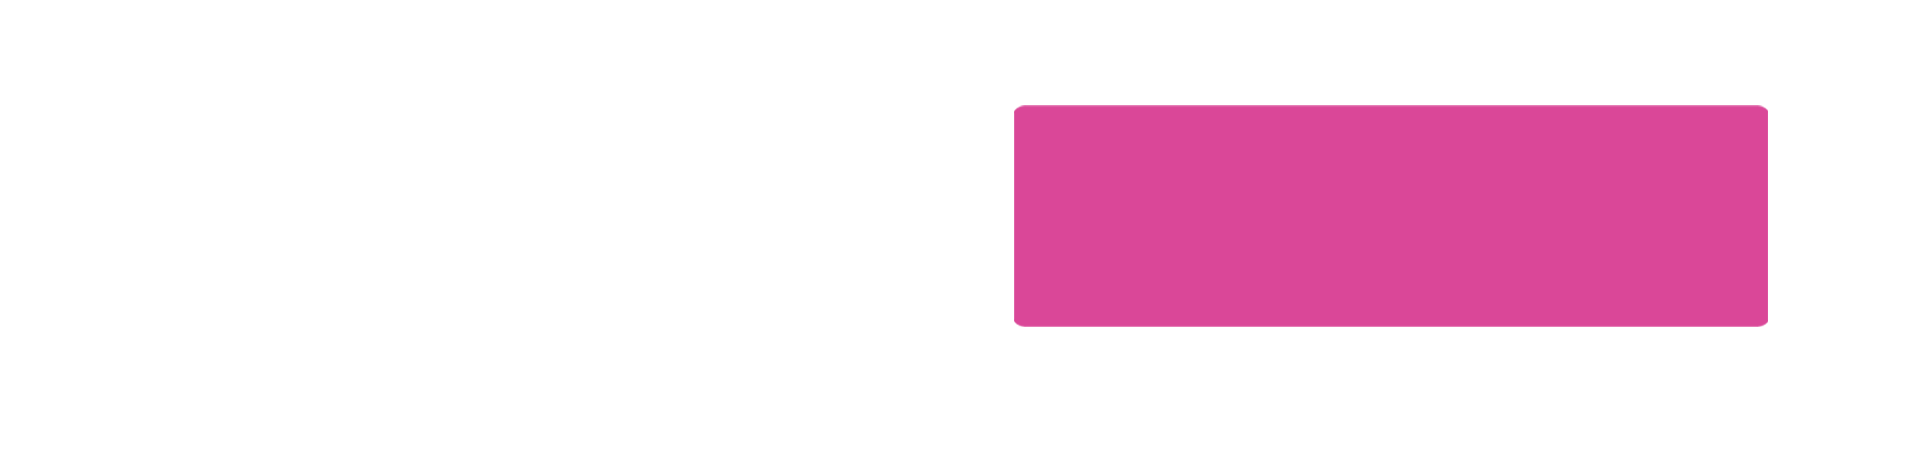 Pink rectangle png. Index of wp content